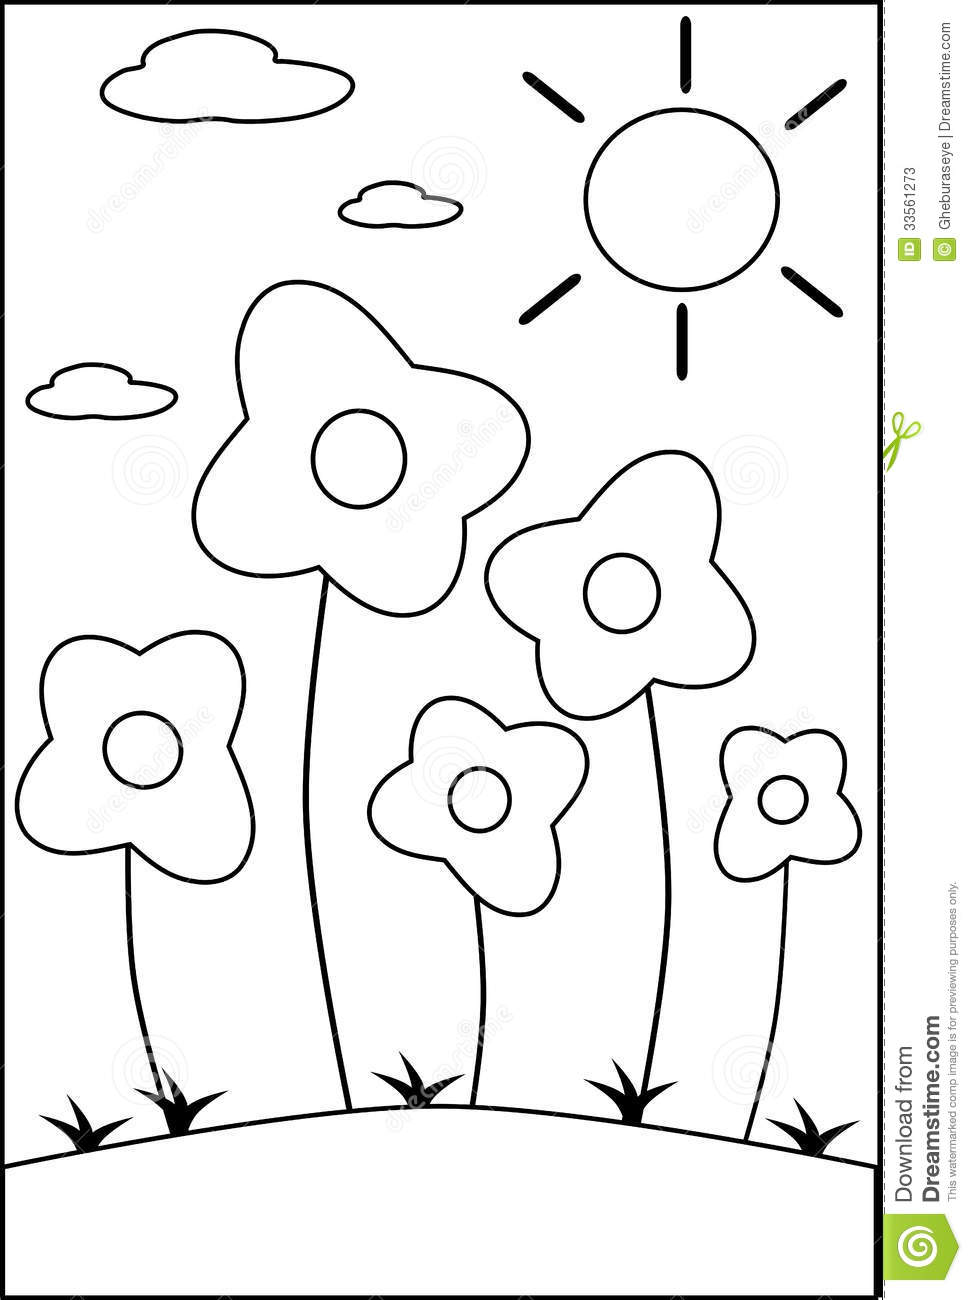 Coloring Flowers Stock Photos - Image: 33561273